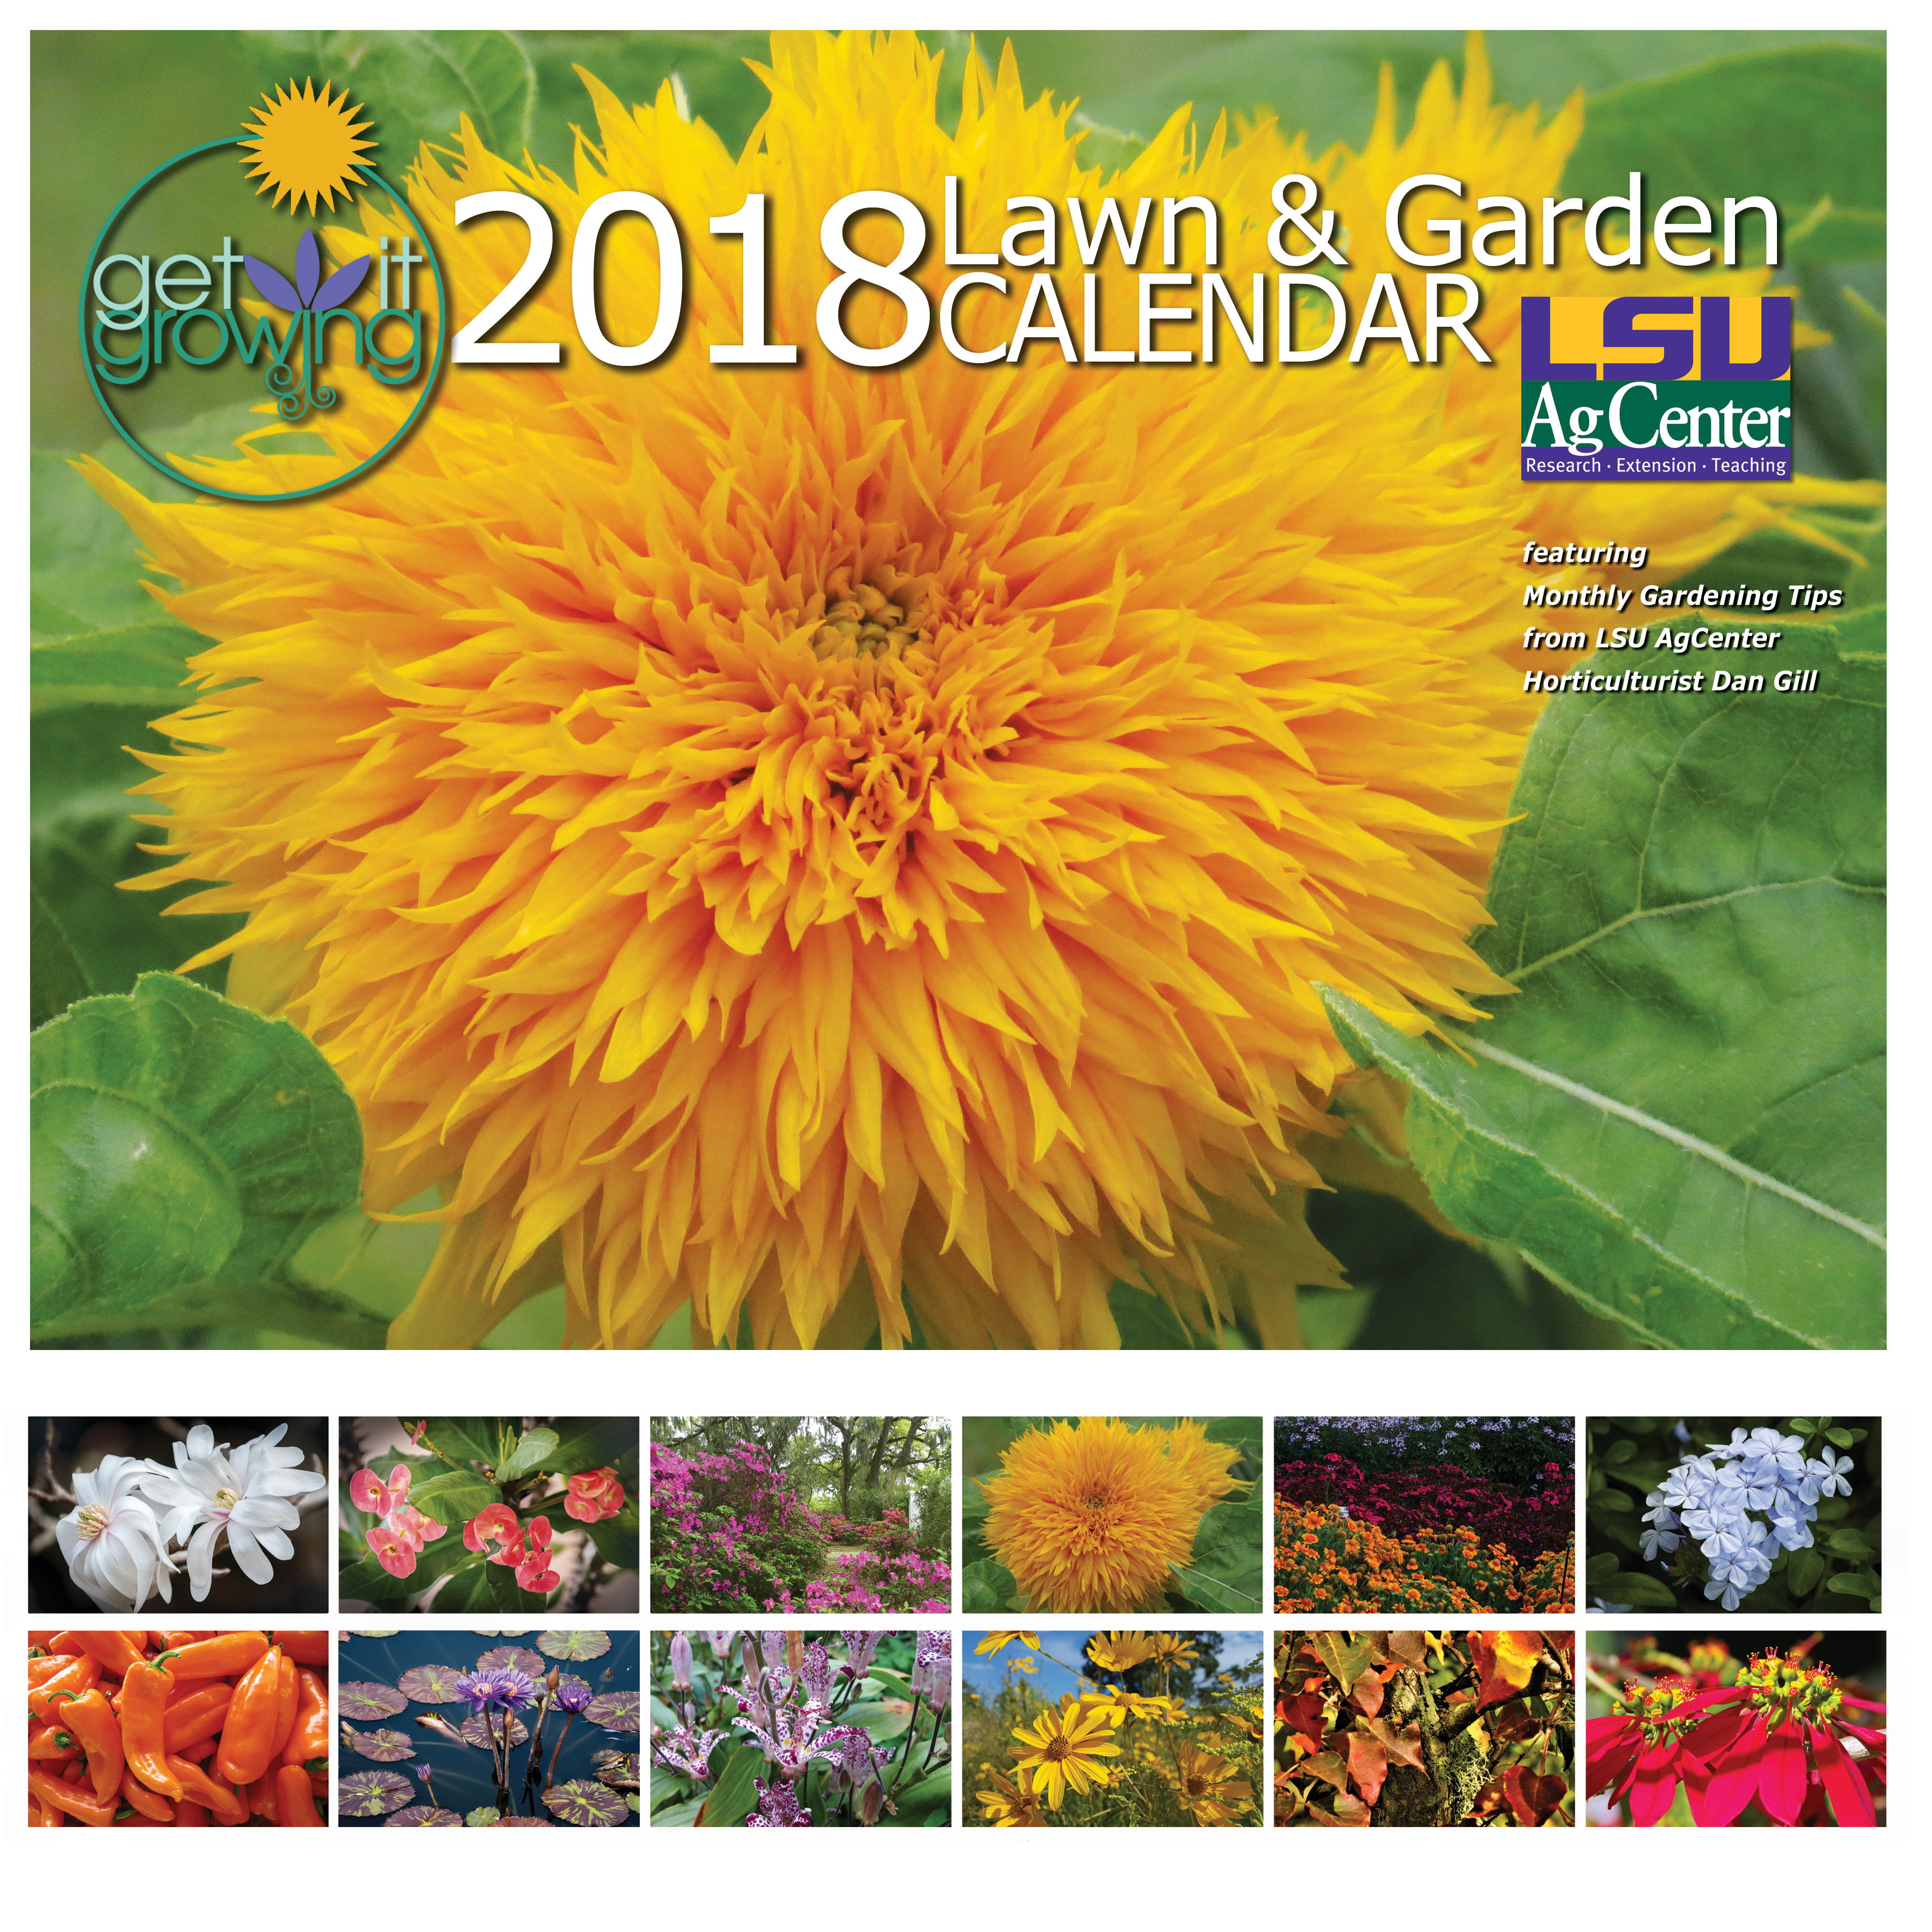 2018 Get It Growing Lawn & Garden Calendar